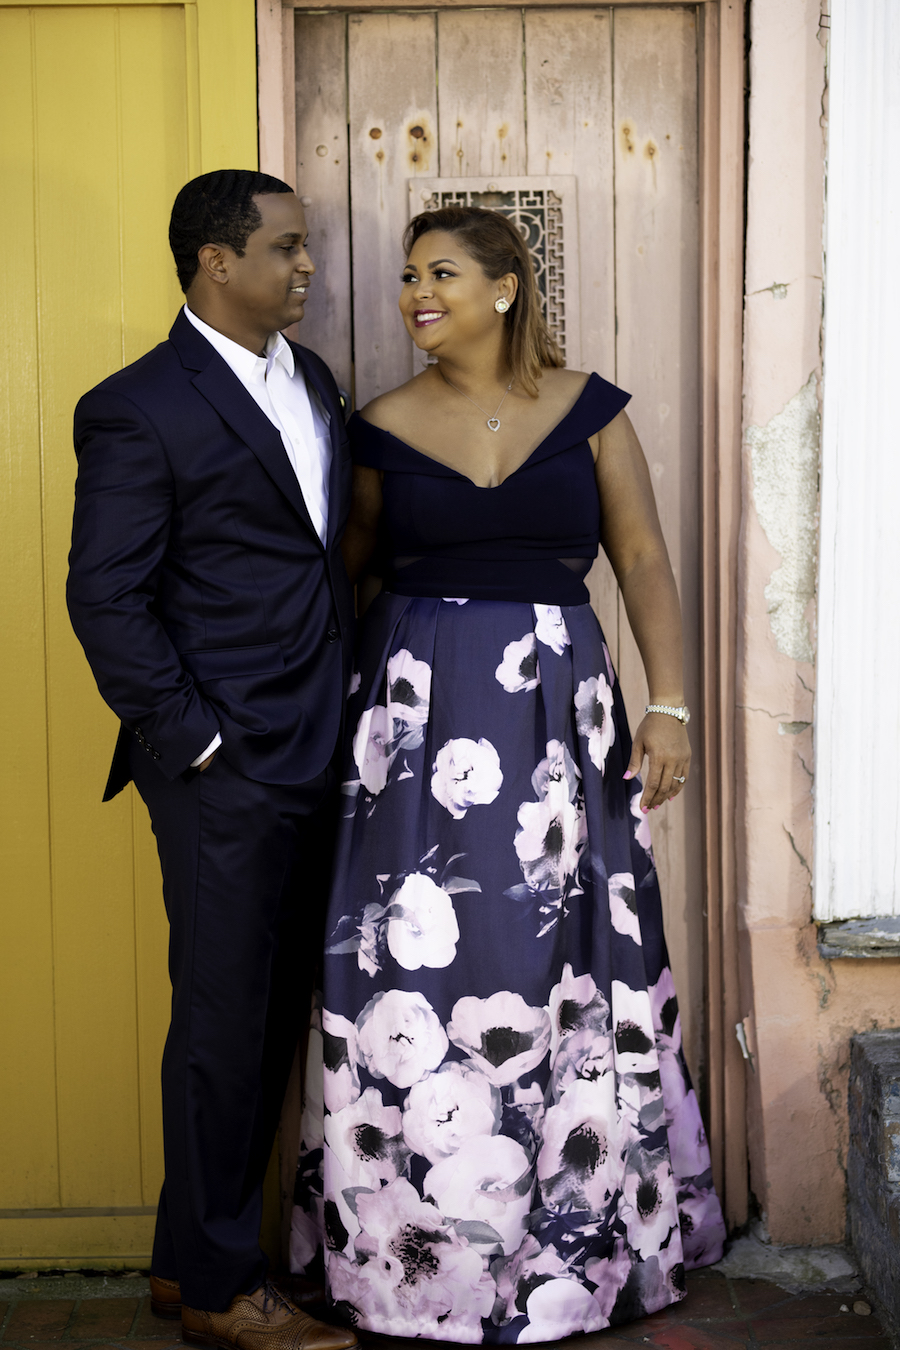 Shannon-and-Aaron_engagement_new-orleans_munaluchi_munaluchi-bride_weddings_decor_fashion_brides-of-color_multicultural-love42-1.jpg